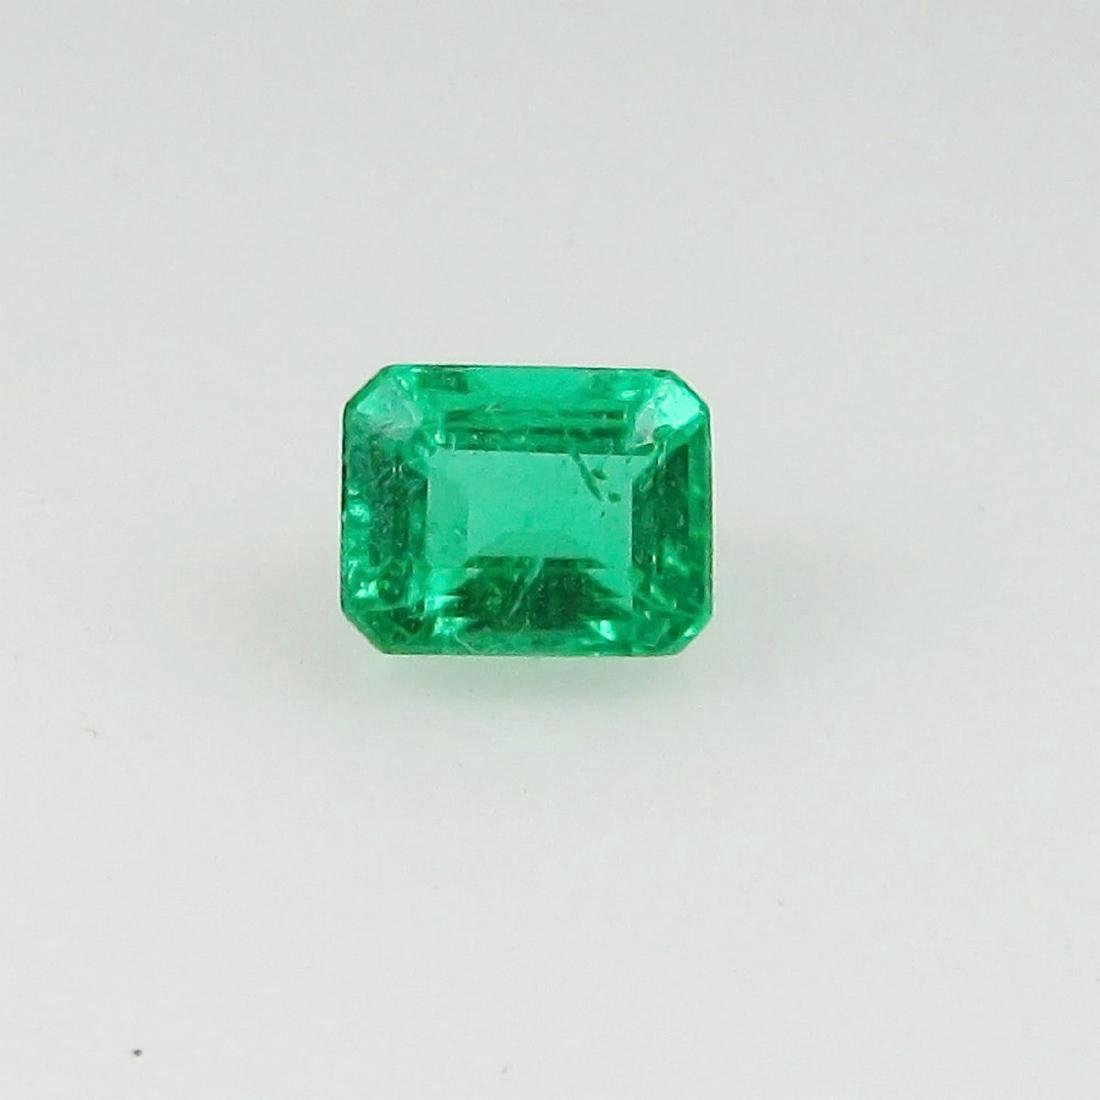 0.39 Carat Natural Zambian Loose Top Green Emerald